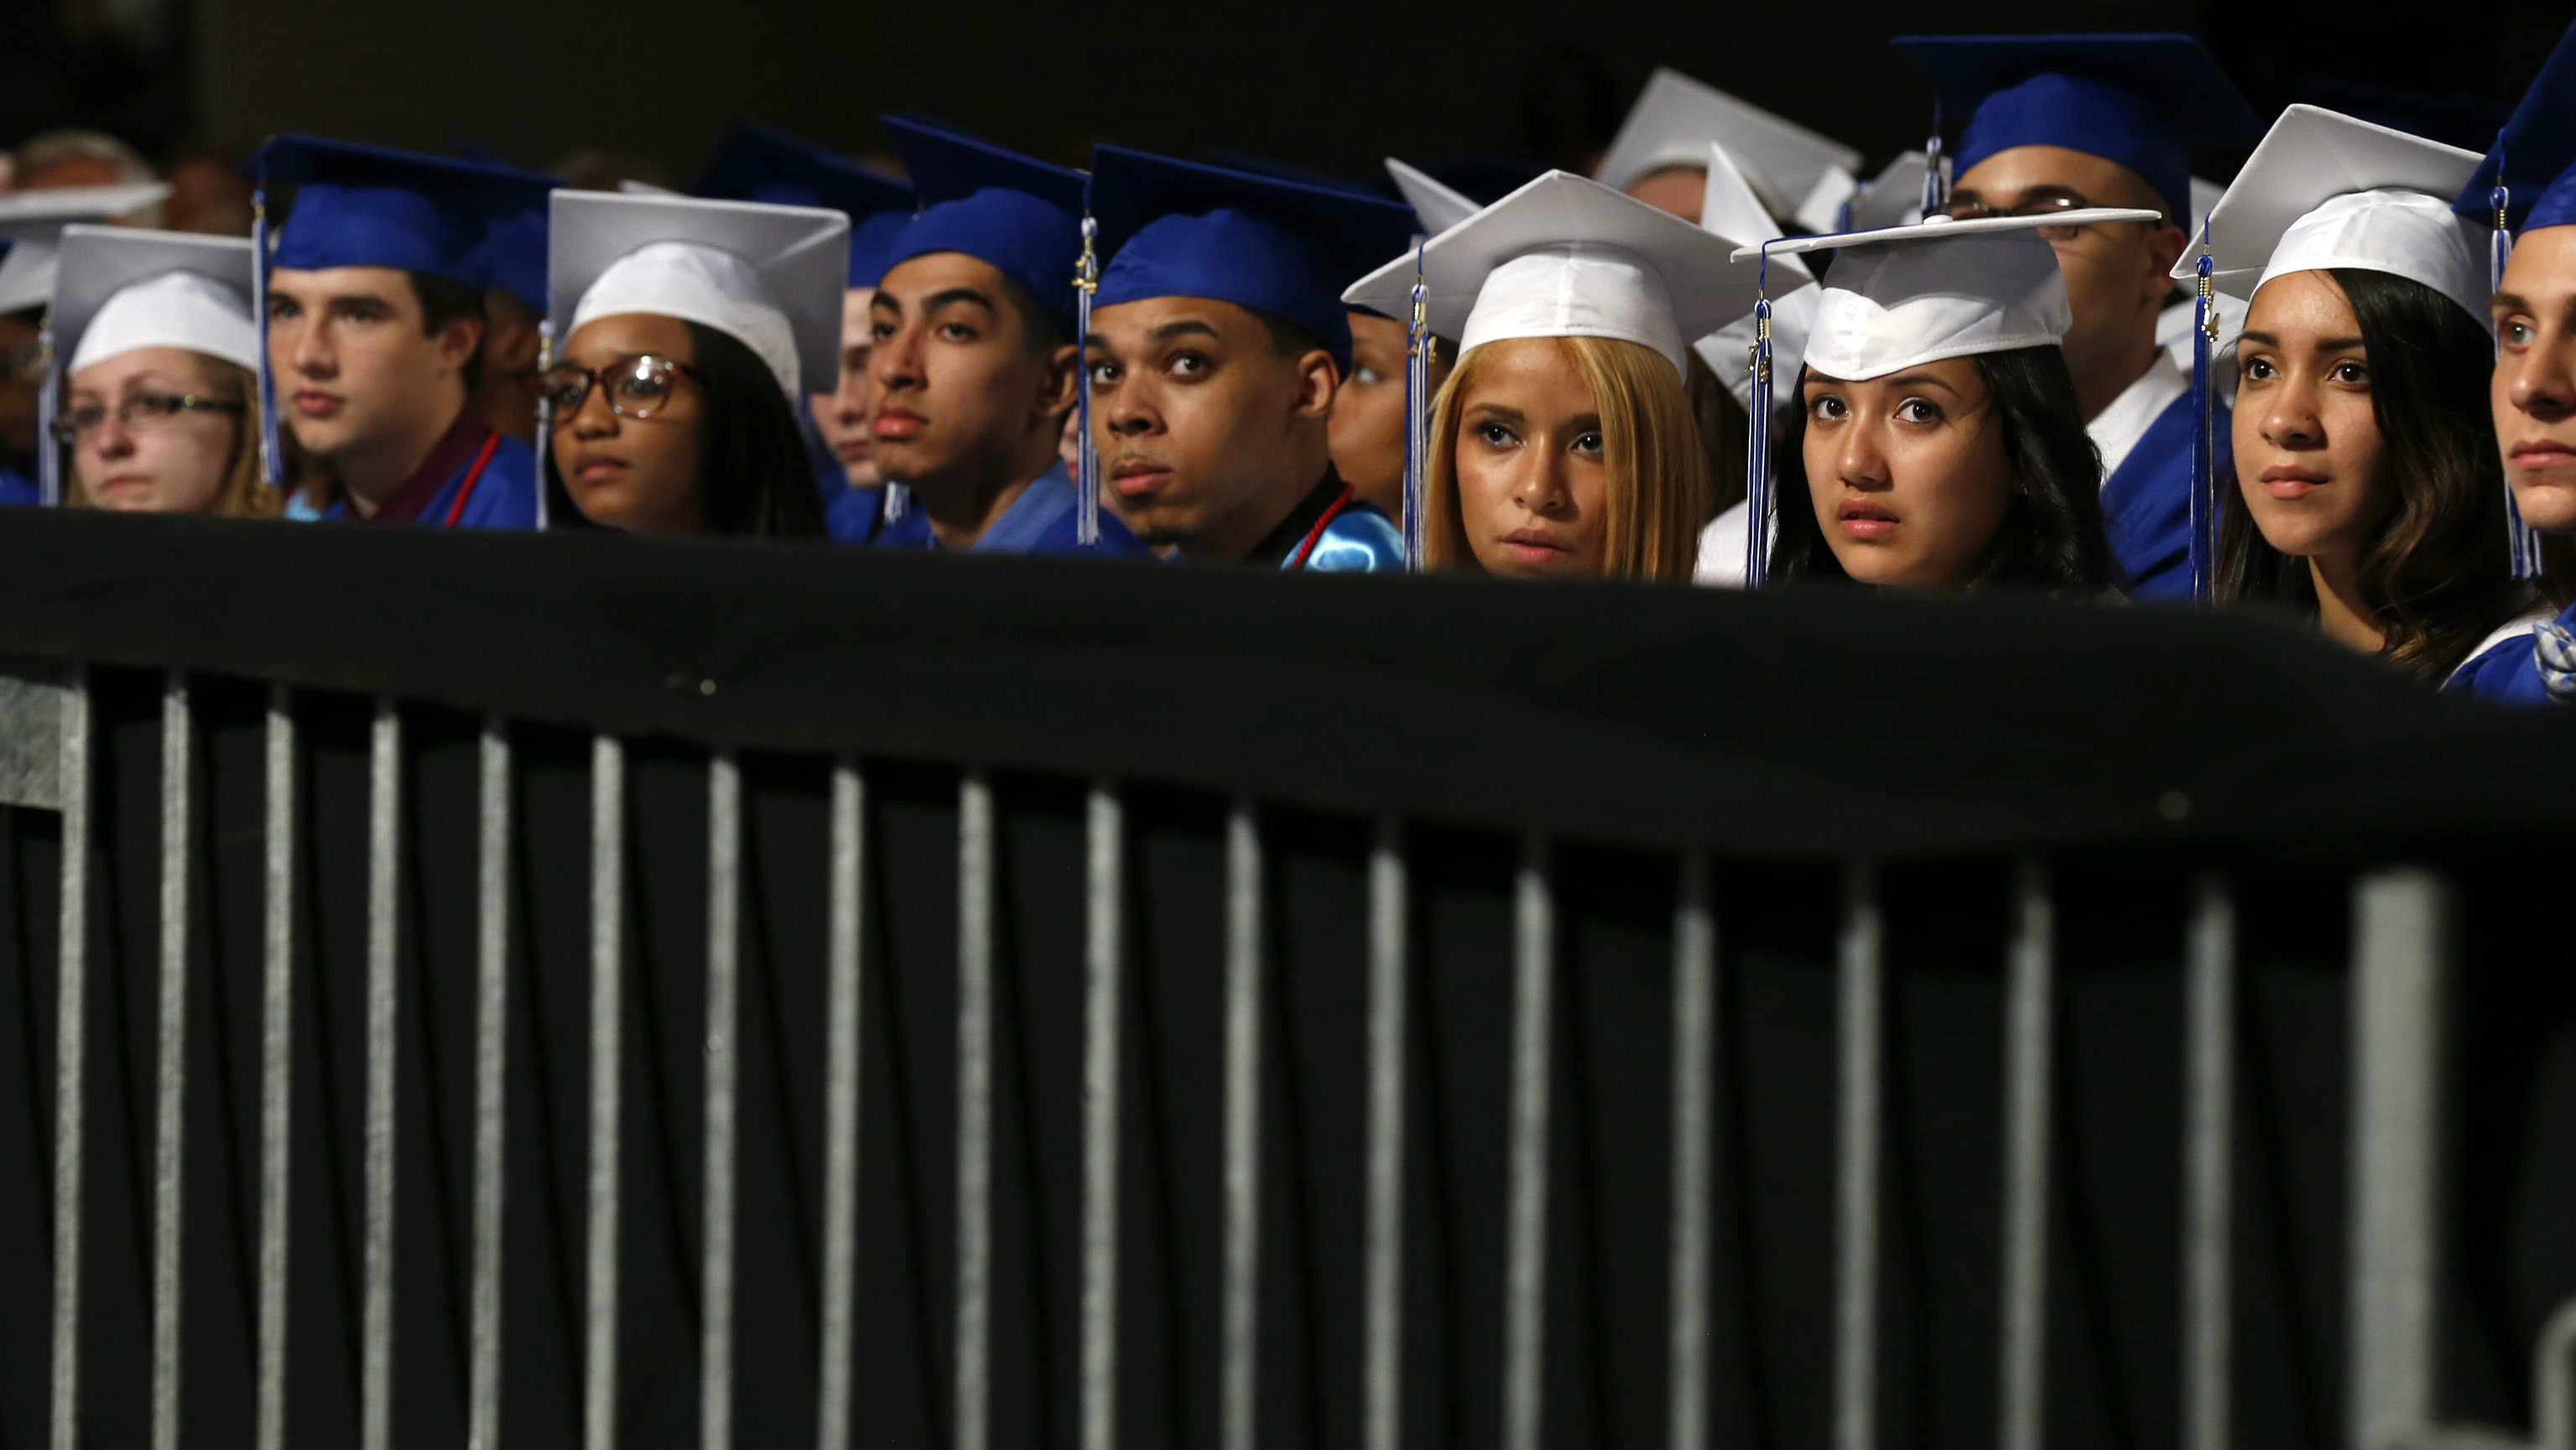 Students listen as U.S. President Obama delivers commencement address at Worcester Technical High School